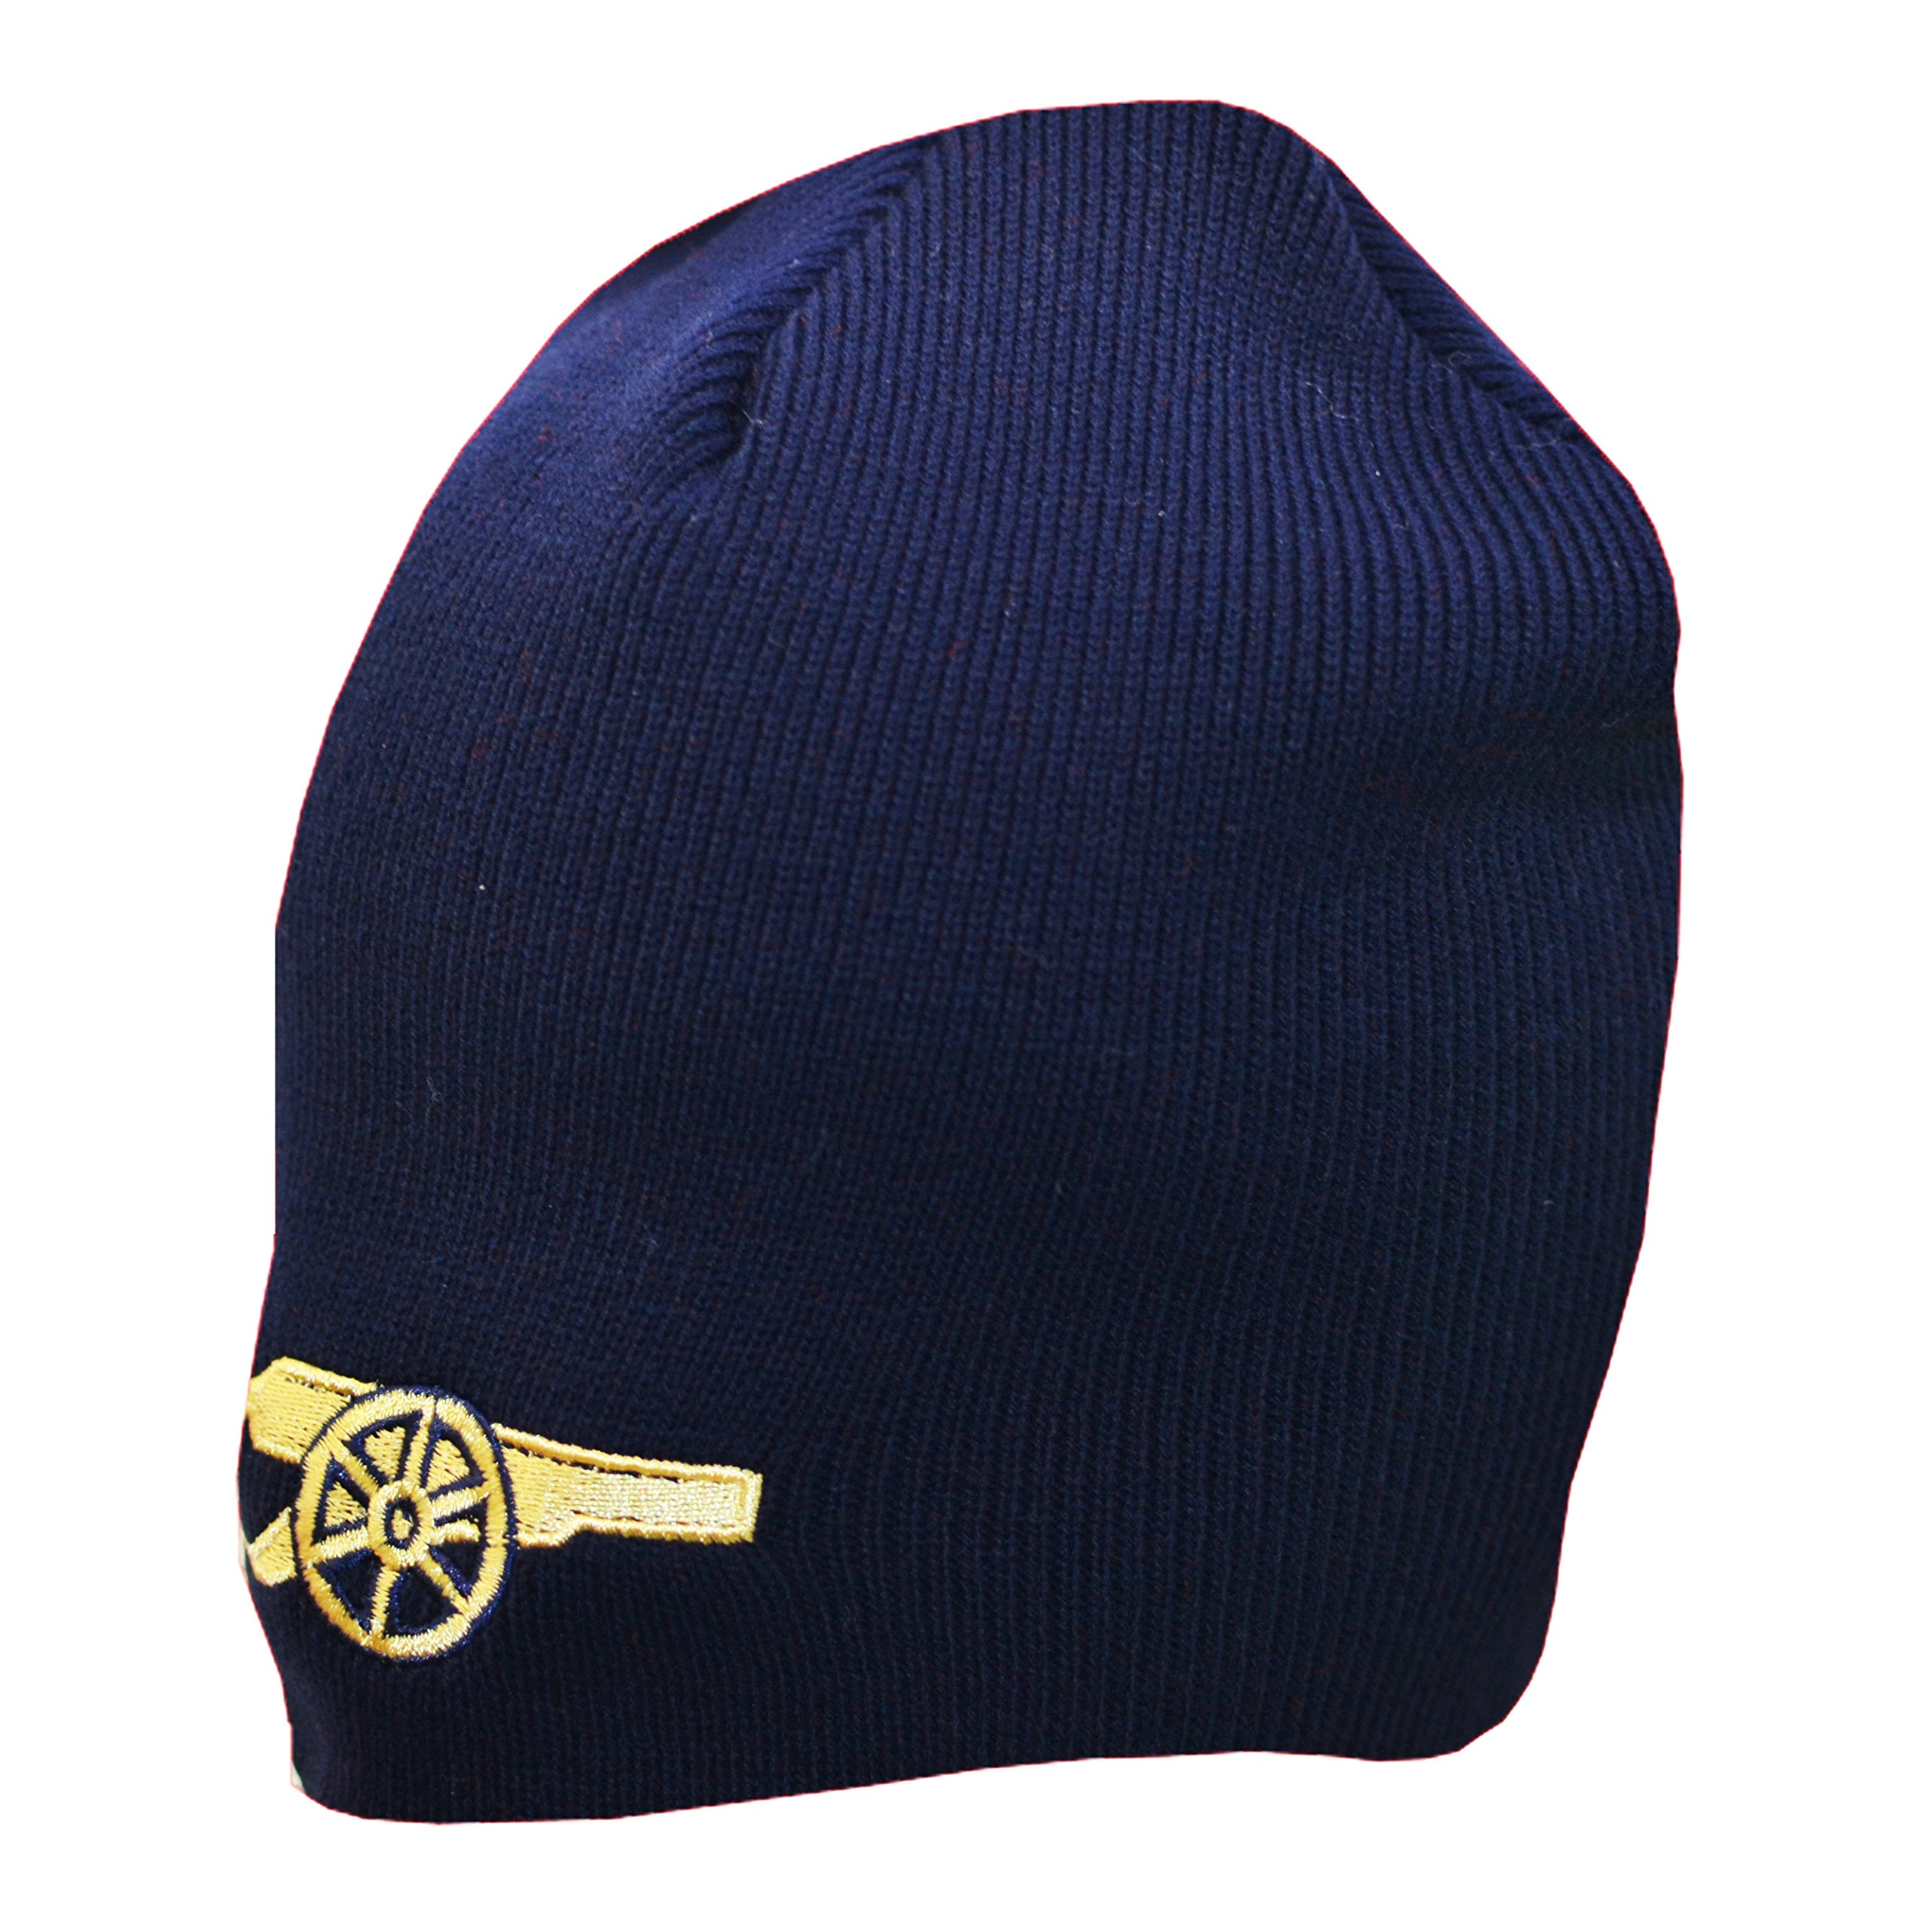 663cabb383e1d Get Quotations · Arsenal FC Authentic EPL Knit Hat - Gunners Navy